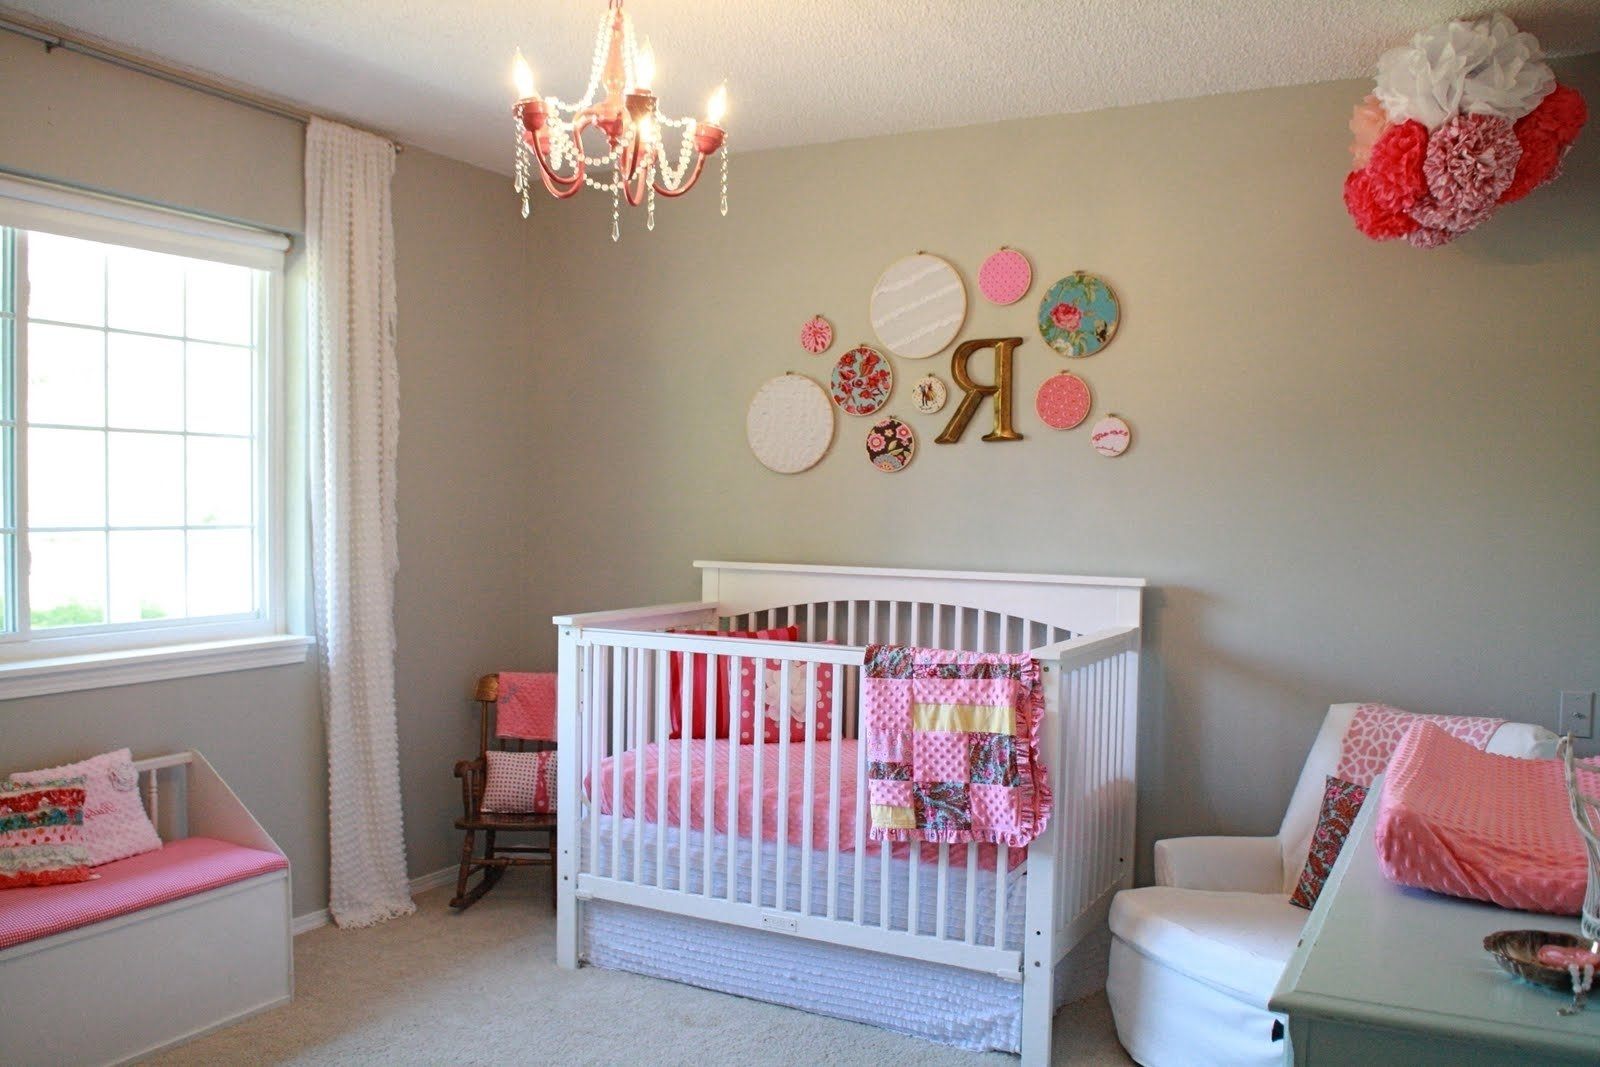 10 Nice Baby Room Ideas For Girls traditional baby room ideas for a girl then baby room ideas twins 2021